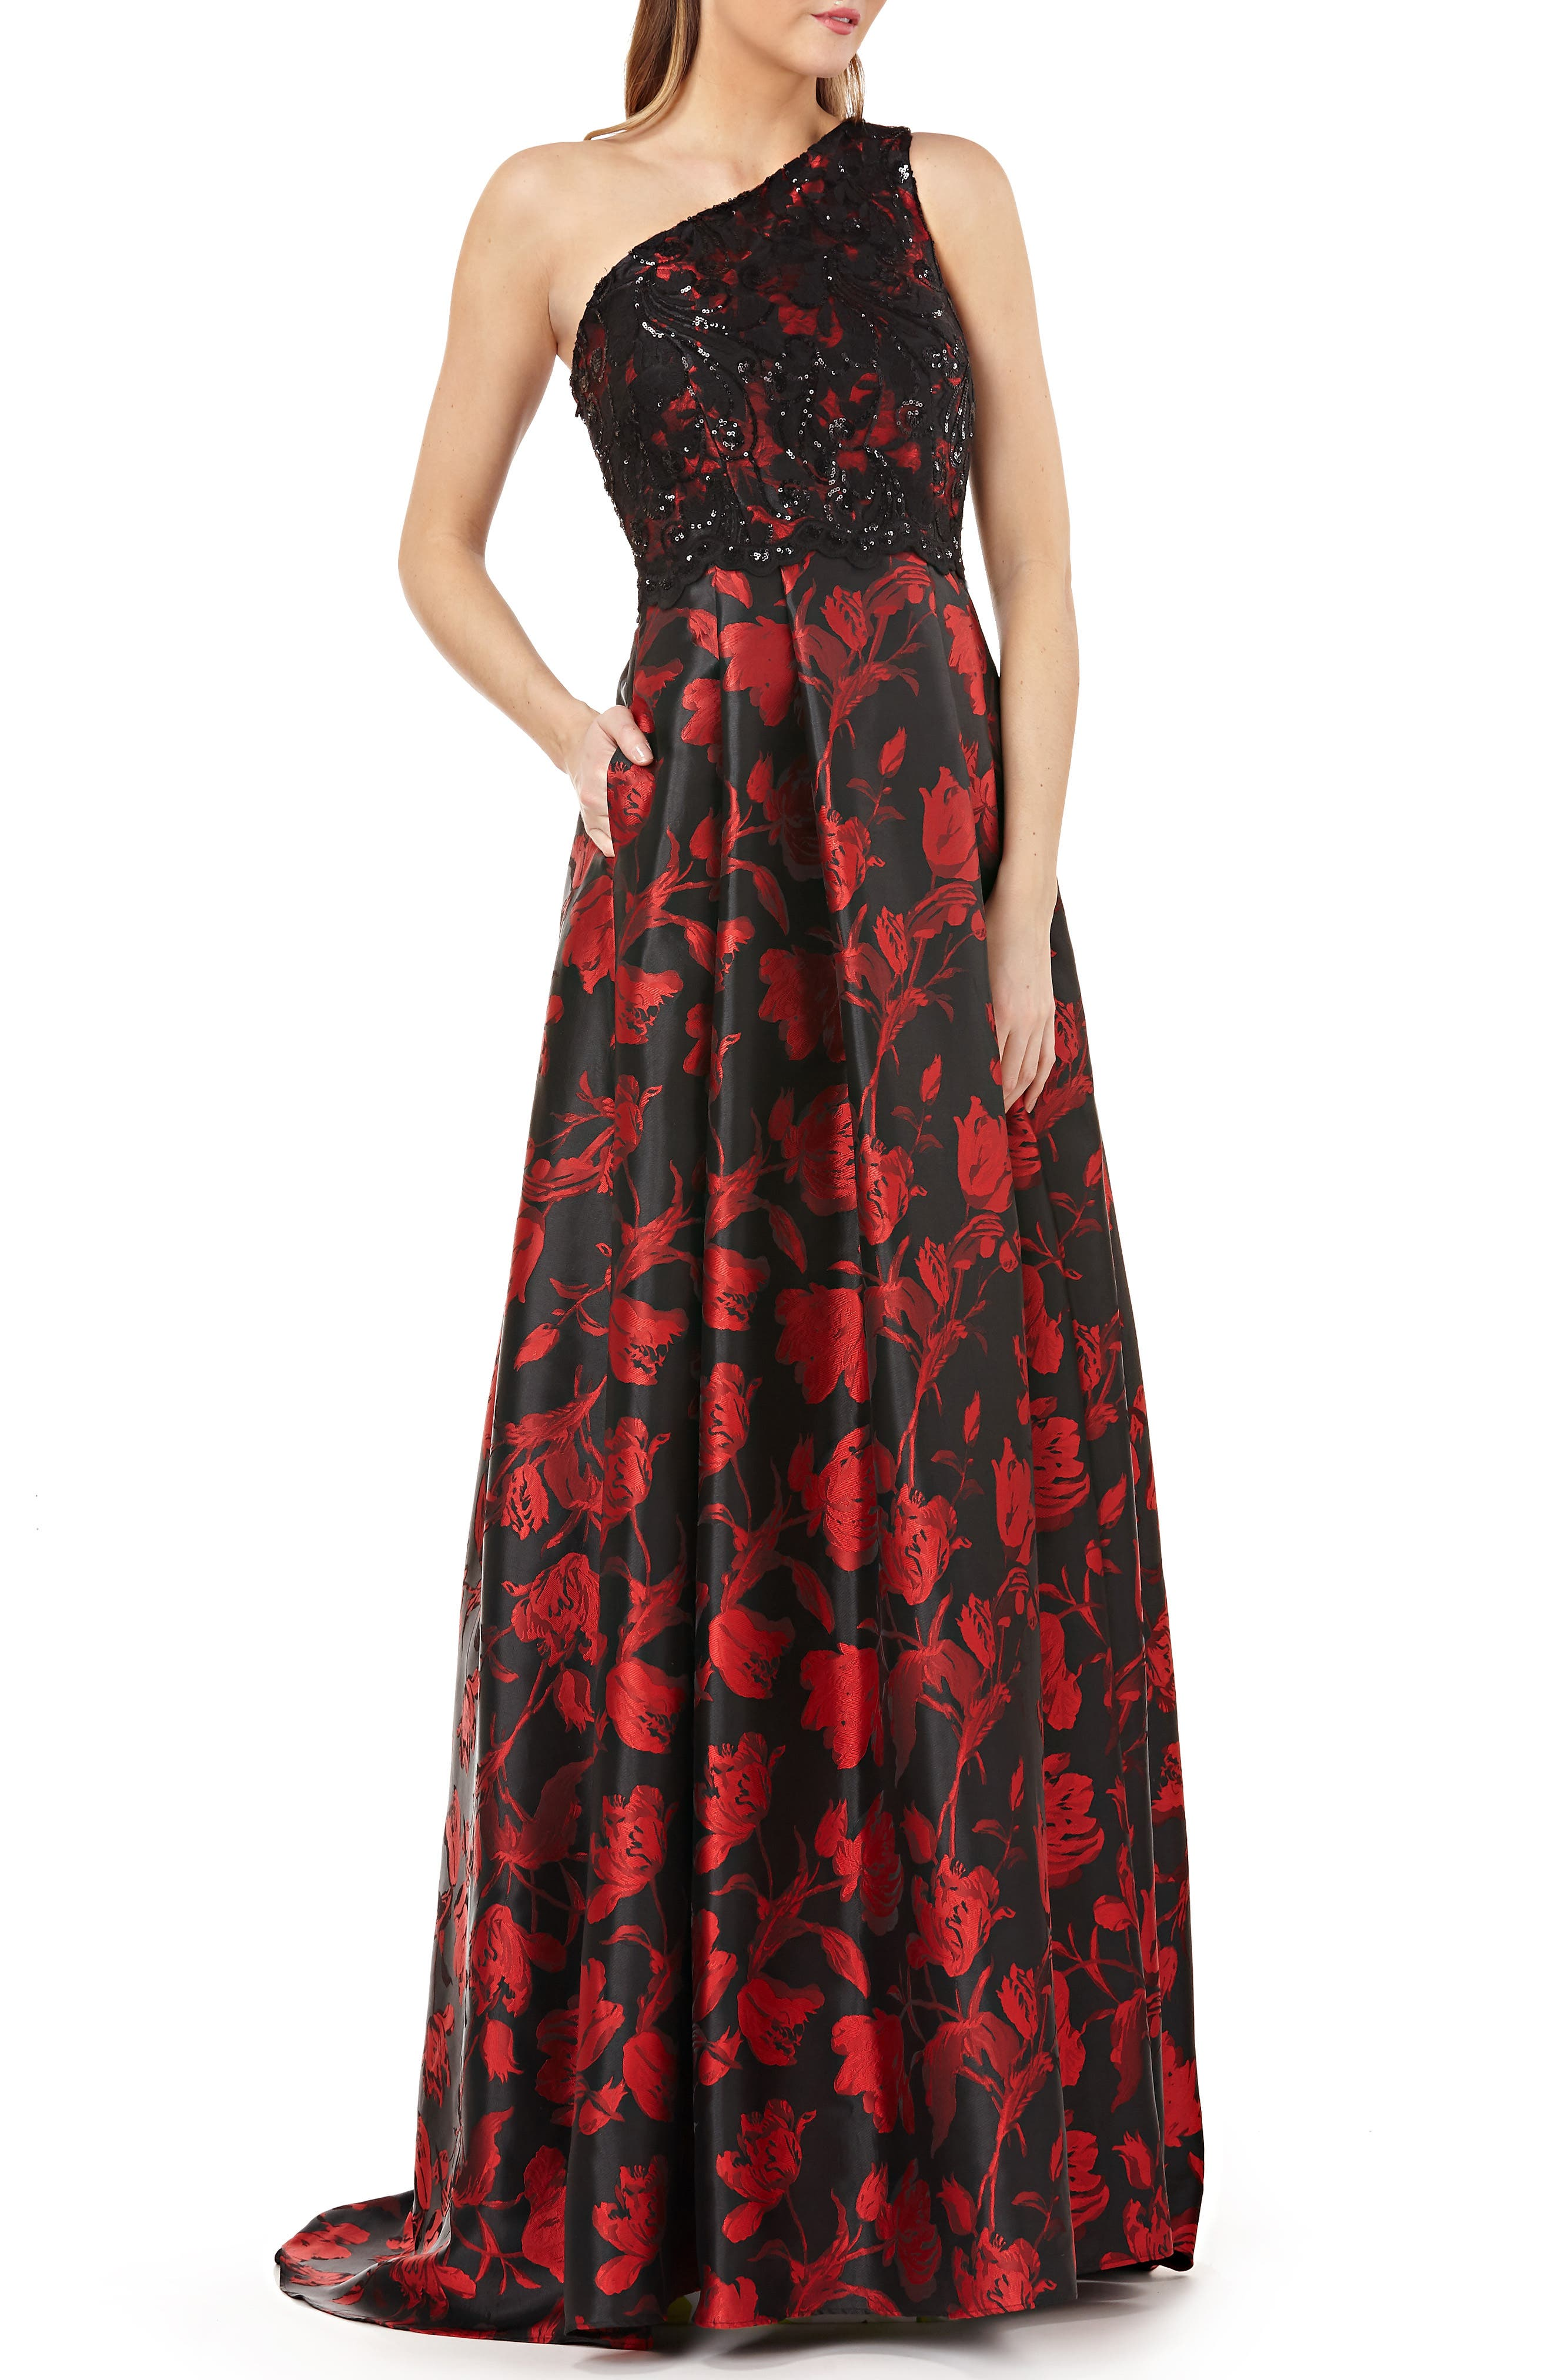 CARMEN MARC VALVO Infusion Embellished One-Shoulder Ball Gown in Red/ Black